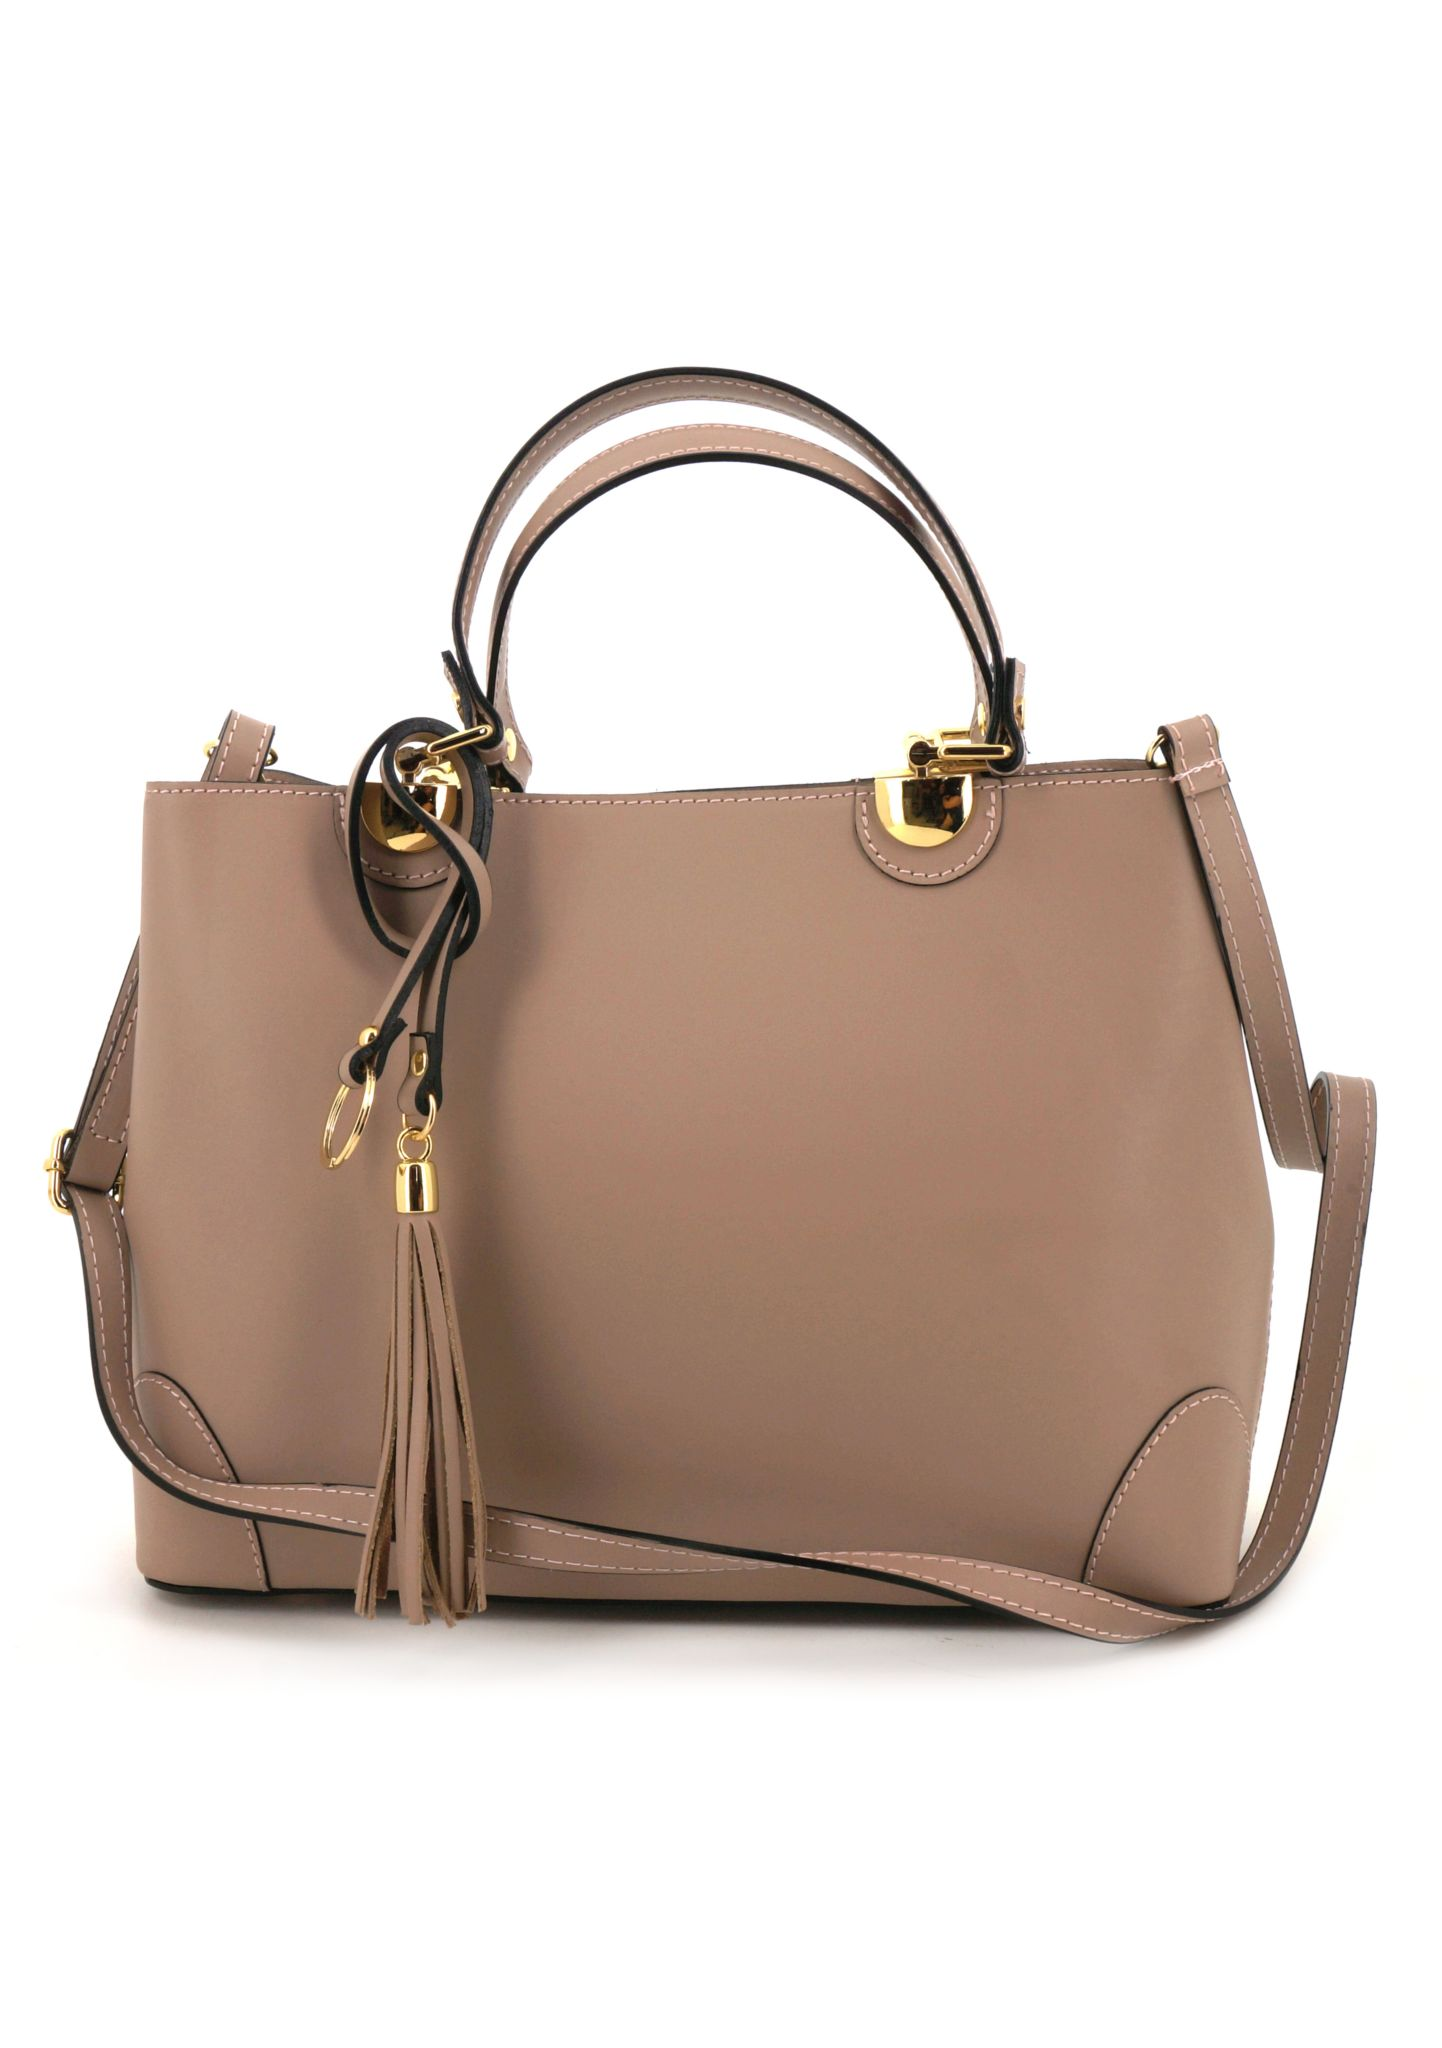 Beige Ruga Leather Double Handle Handbag With Strap 019 detail 3